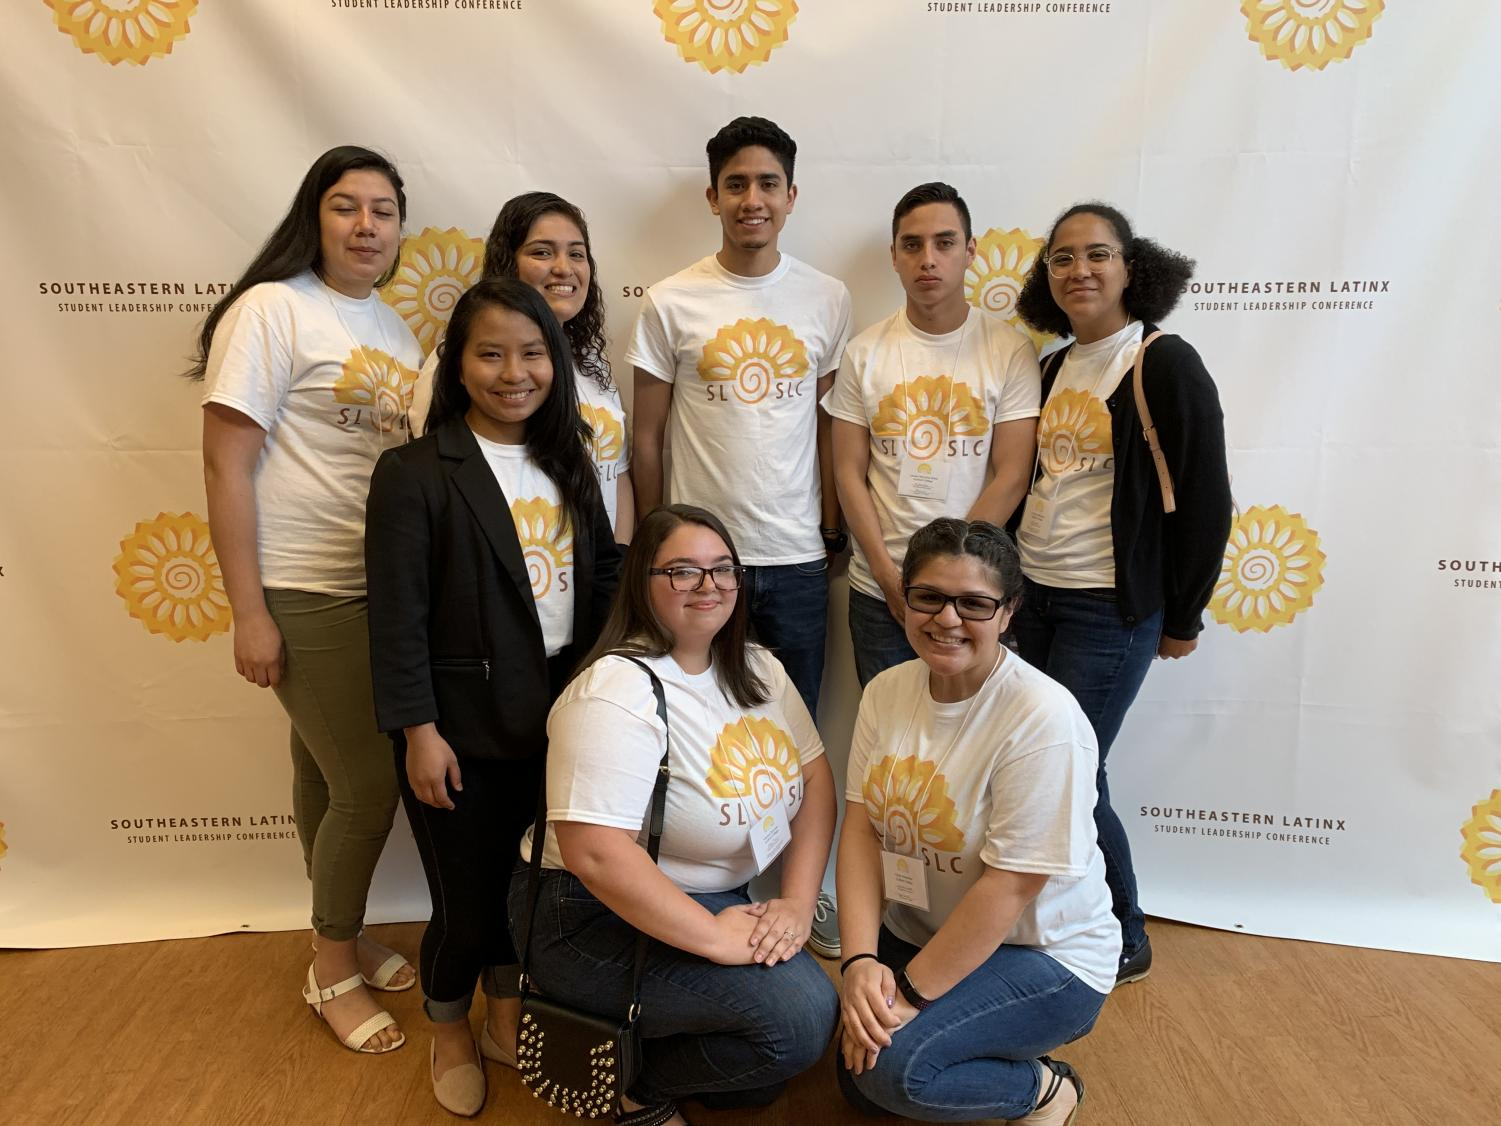 Hispanos Unidos de Guilford leaders attended the 2019 Southeastern LatinX Student Leadership Conference April 12-14 at Western Carolina University, where the club was honored with two awards.//Photo Courtesy Hispanos Unidos de Guilford